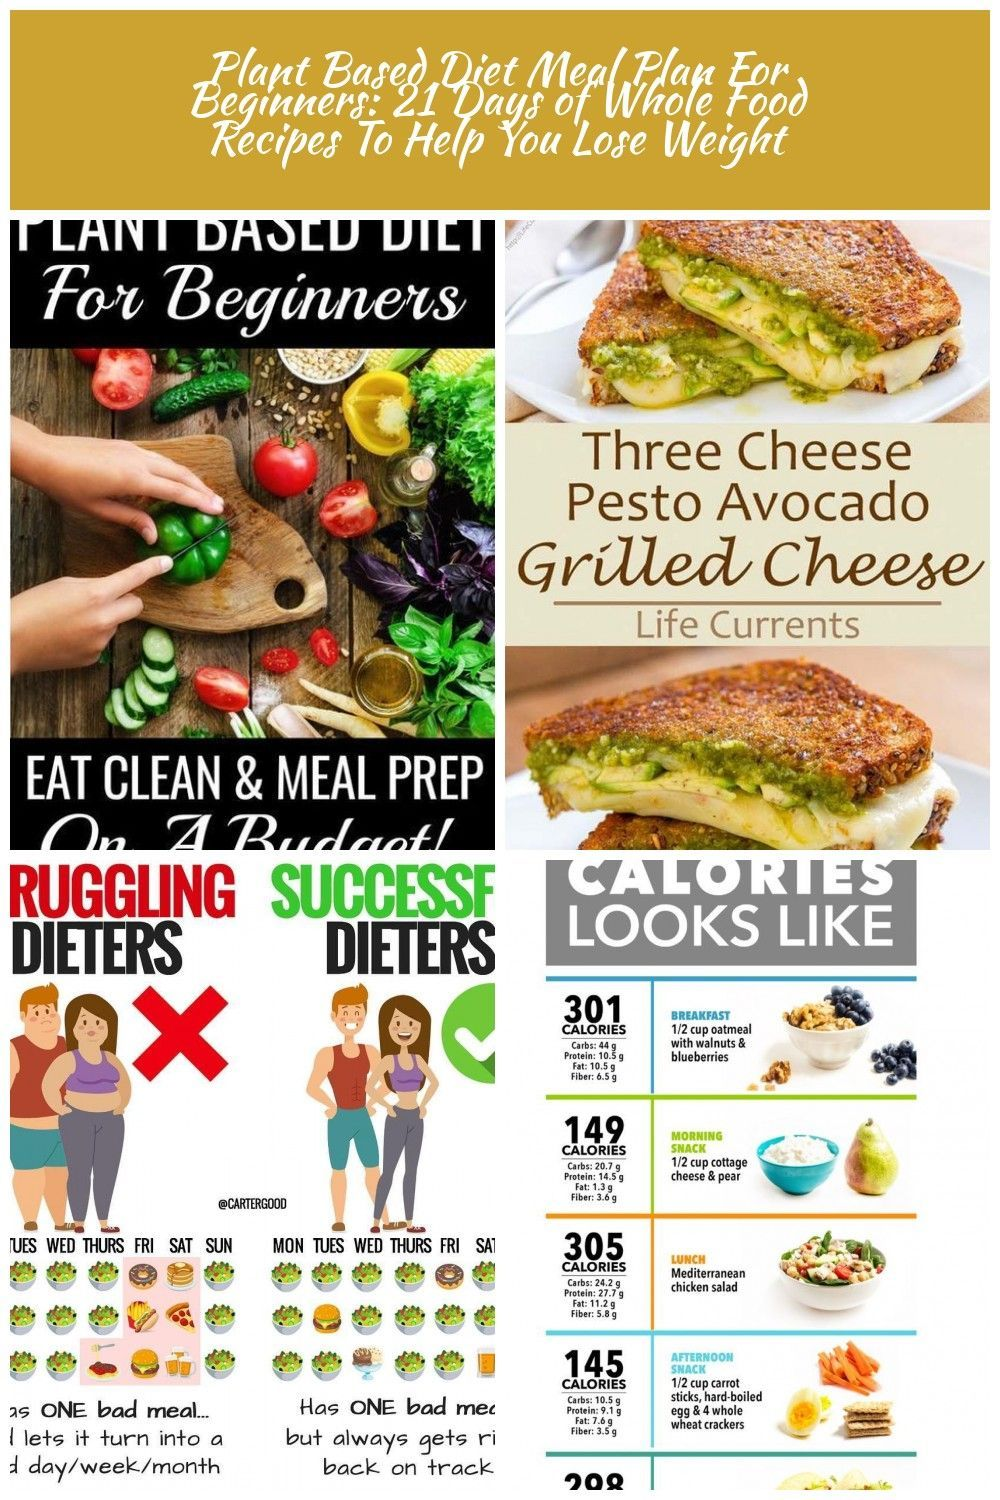 Plant Based Recipes For Beginners This Easy Plant Based Diet Meal Plan Is Perfect For Beginners Plant Based Diet Meal Plan Plant Based Diet Whole Food Recipes